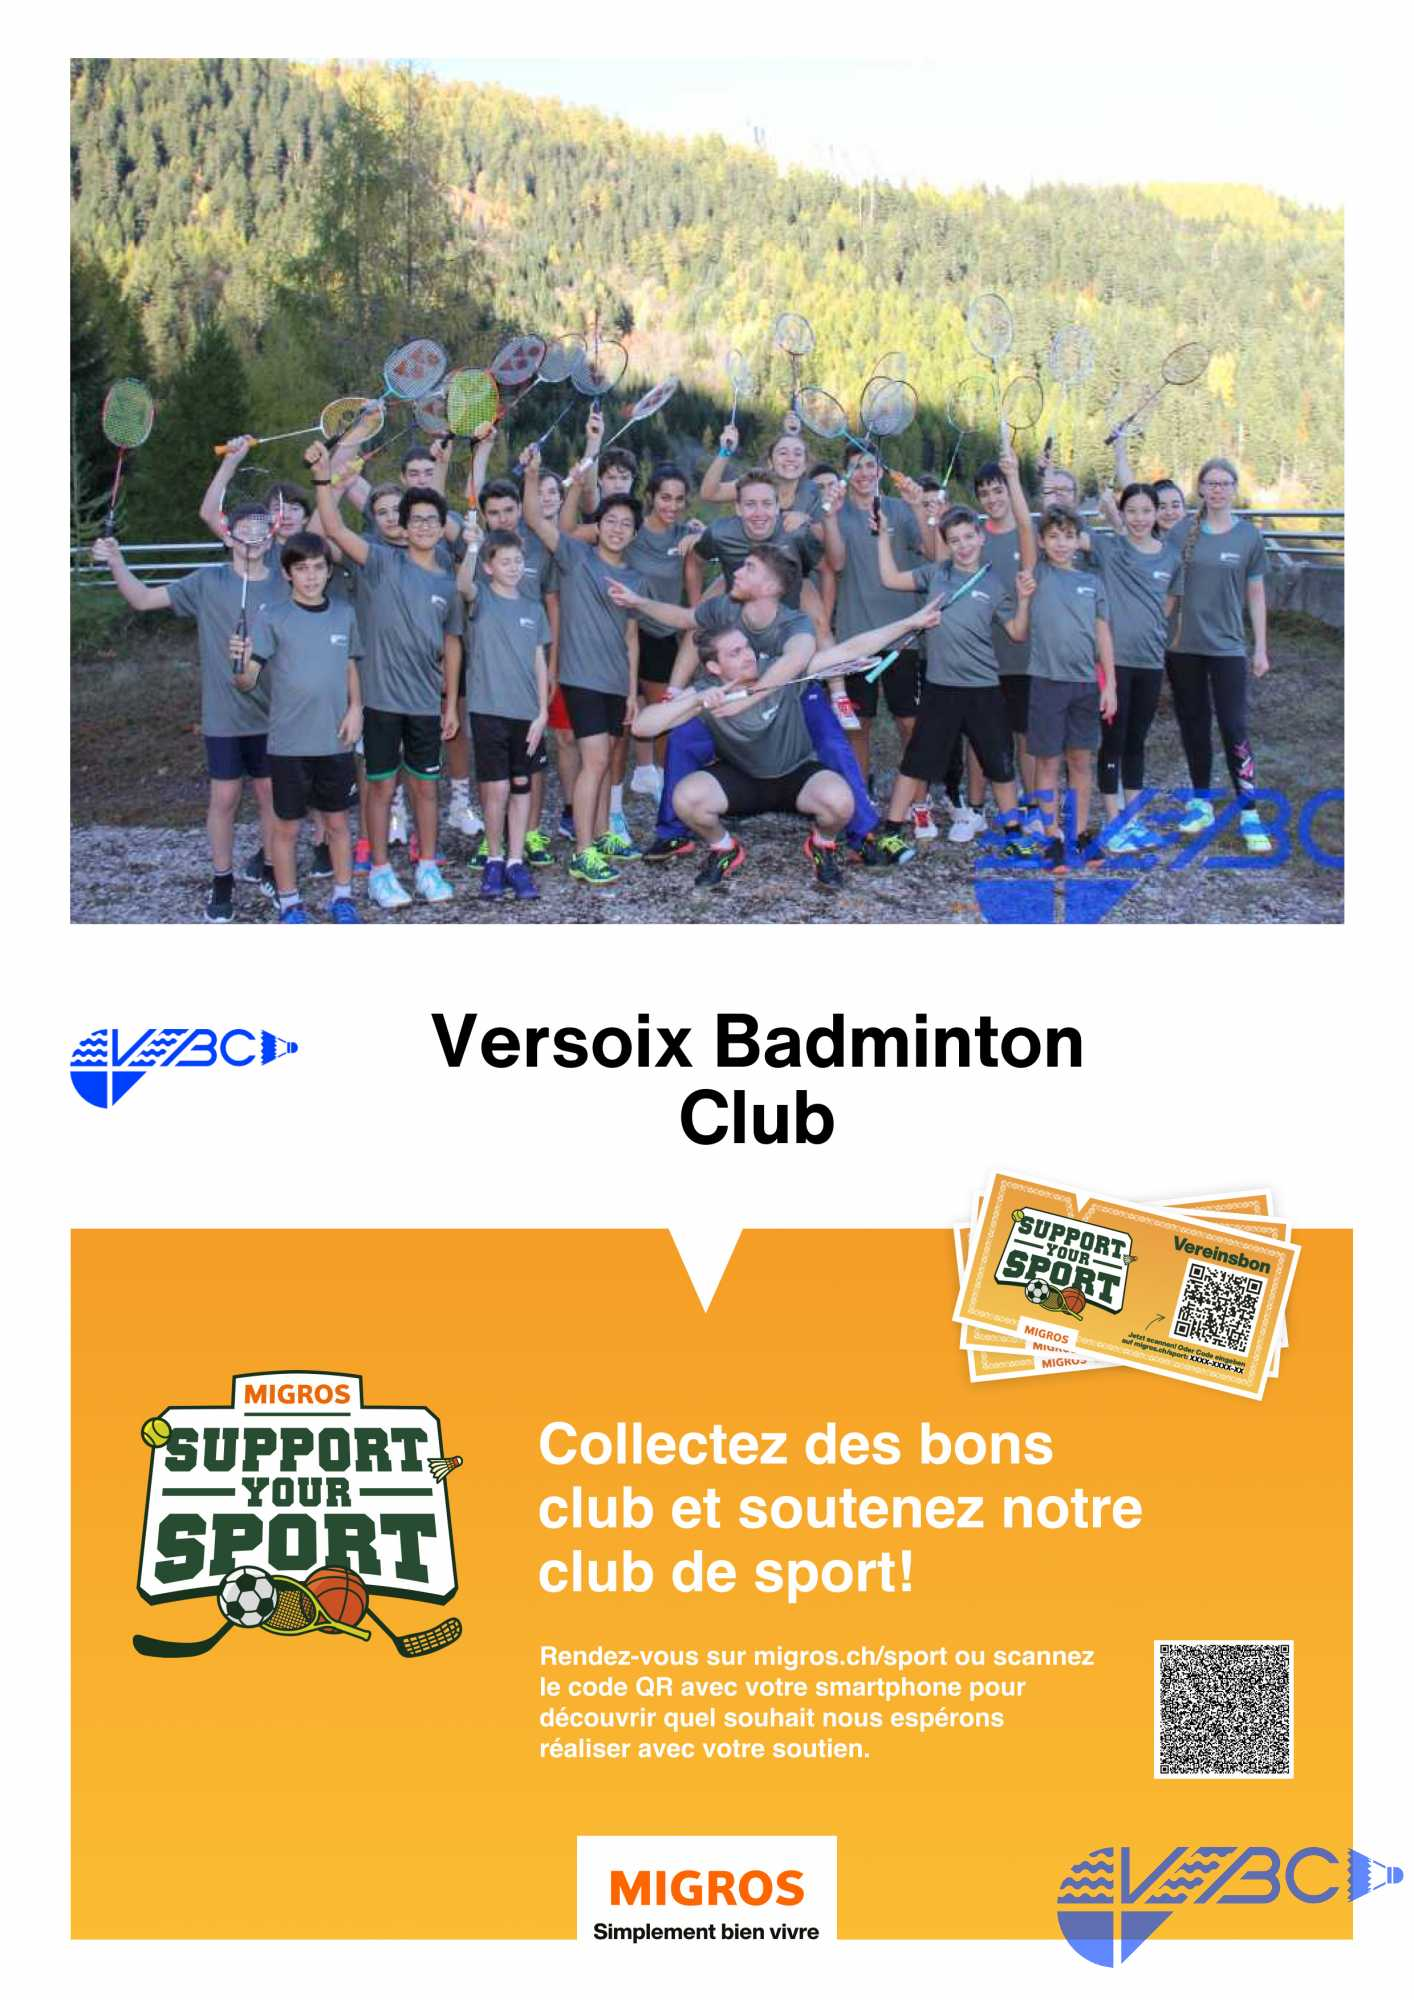 https://supportyoursport.migros.ch/fr/clubs/versoix-badminton-club/